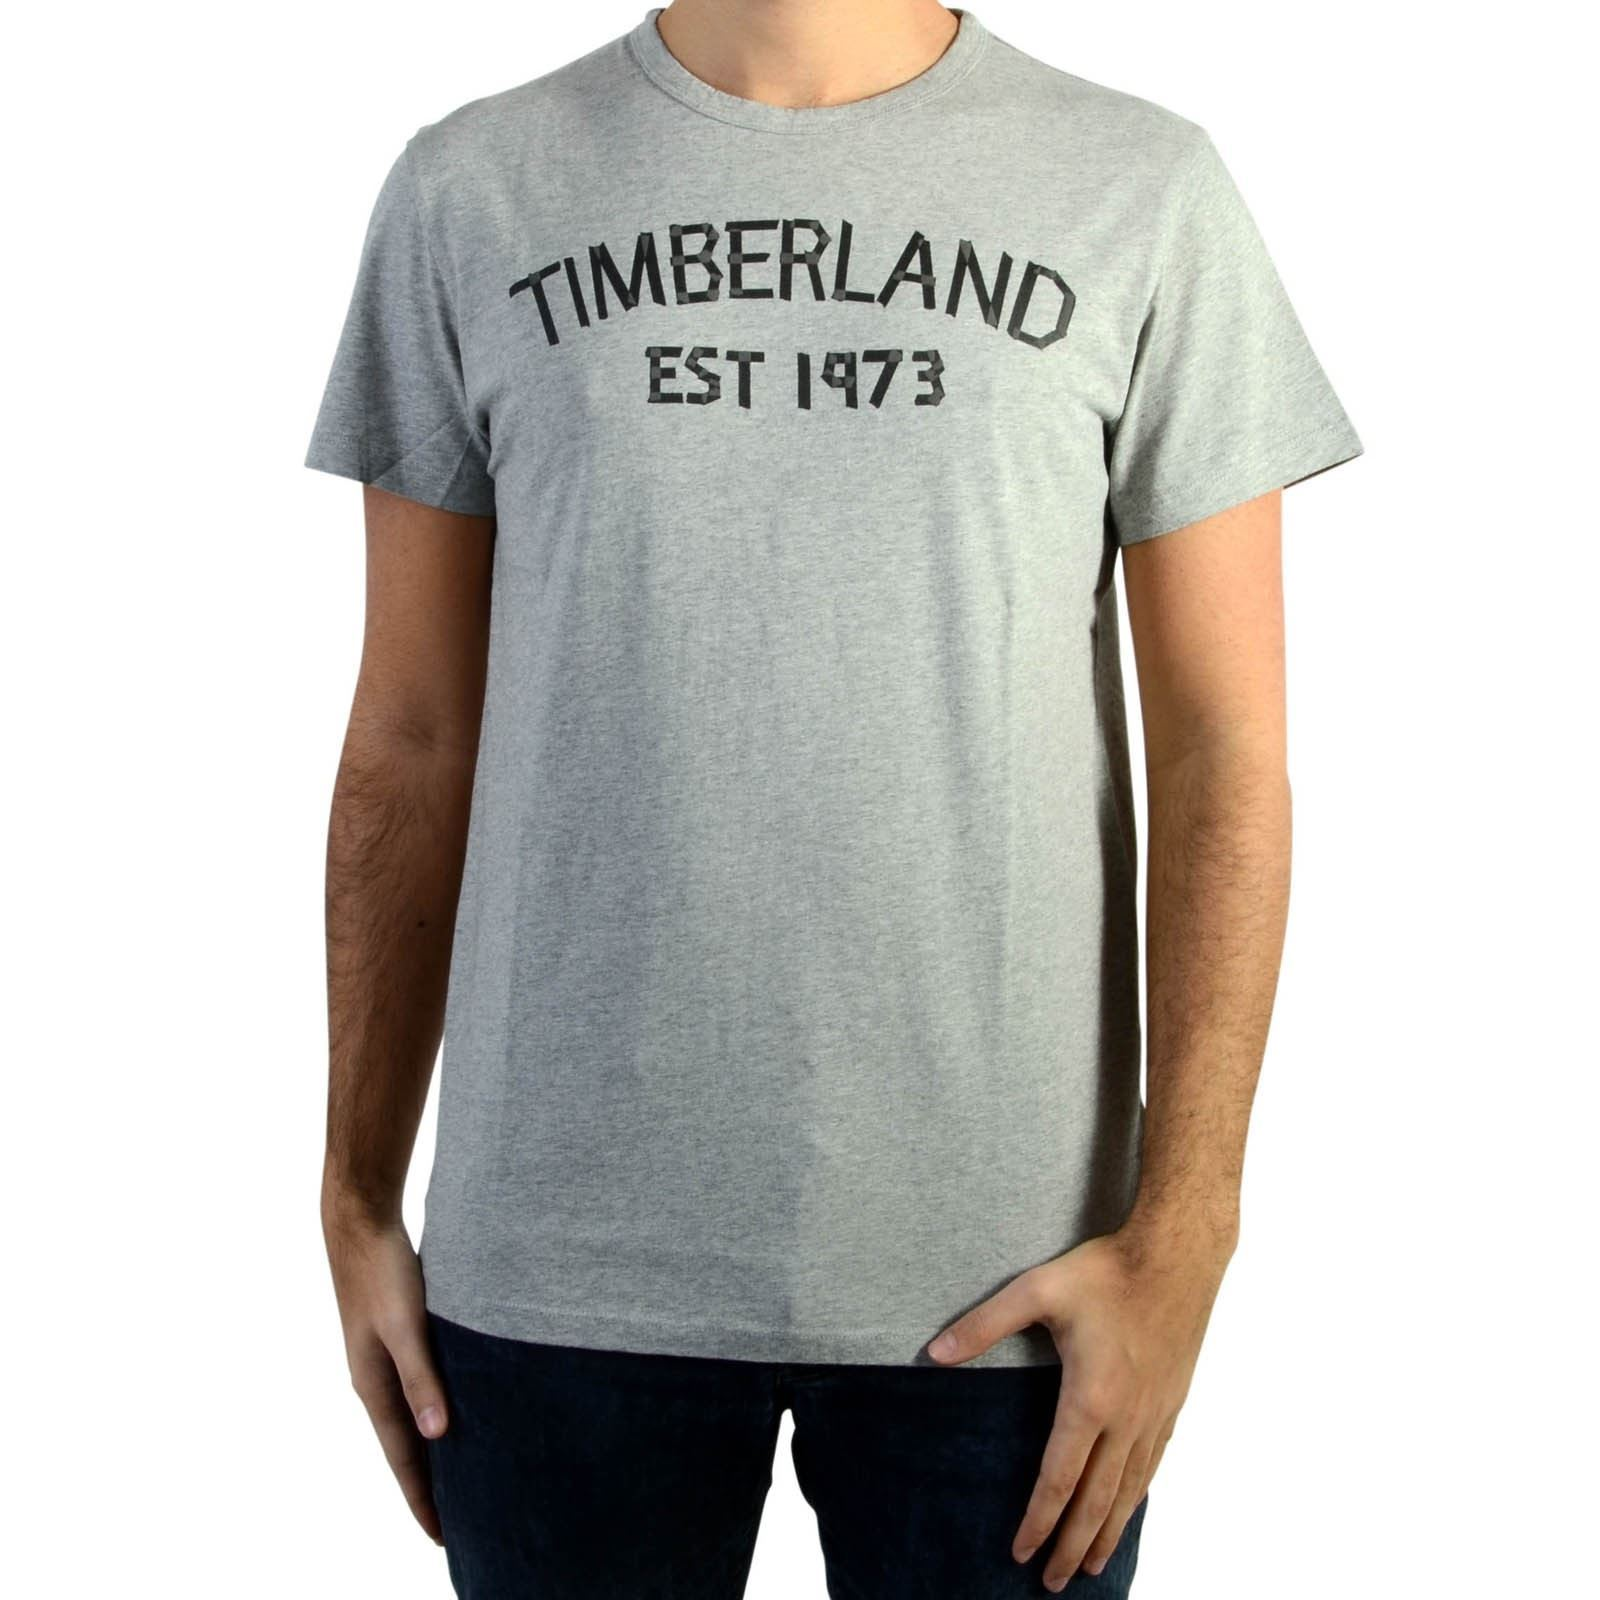 Gris Homme HeatT Manches Timberland Tee Gry shirt Tape V Med Courtes WE29IDHY